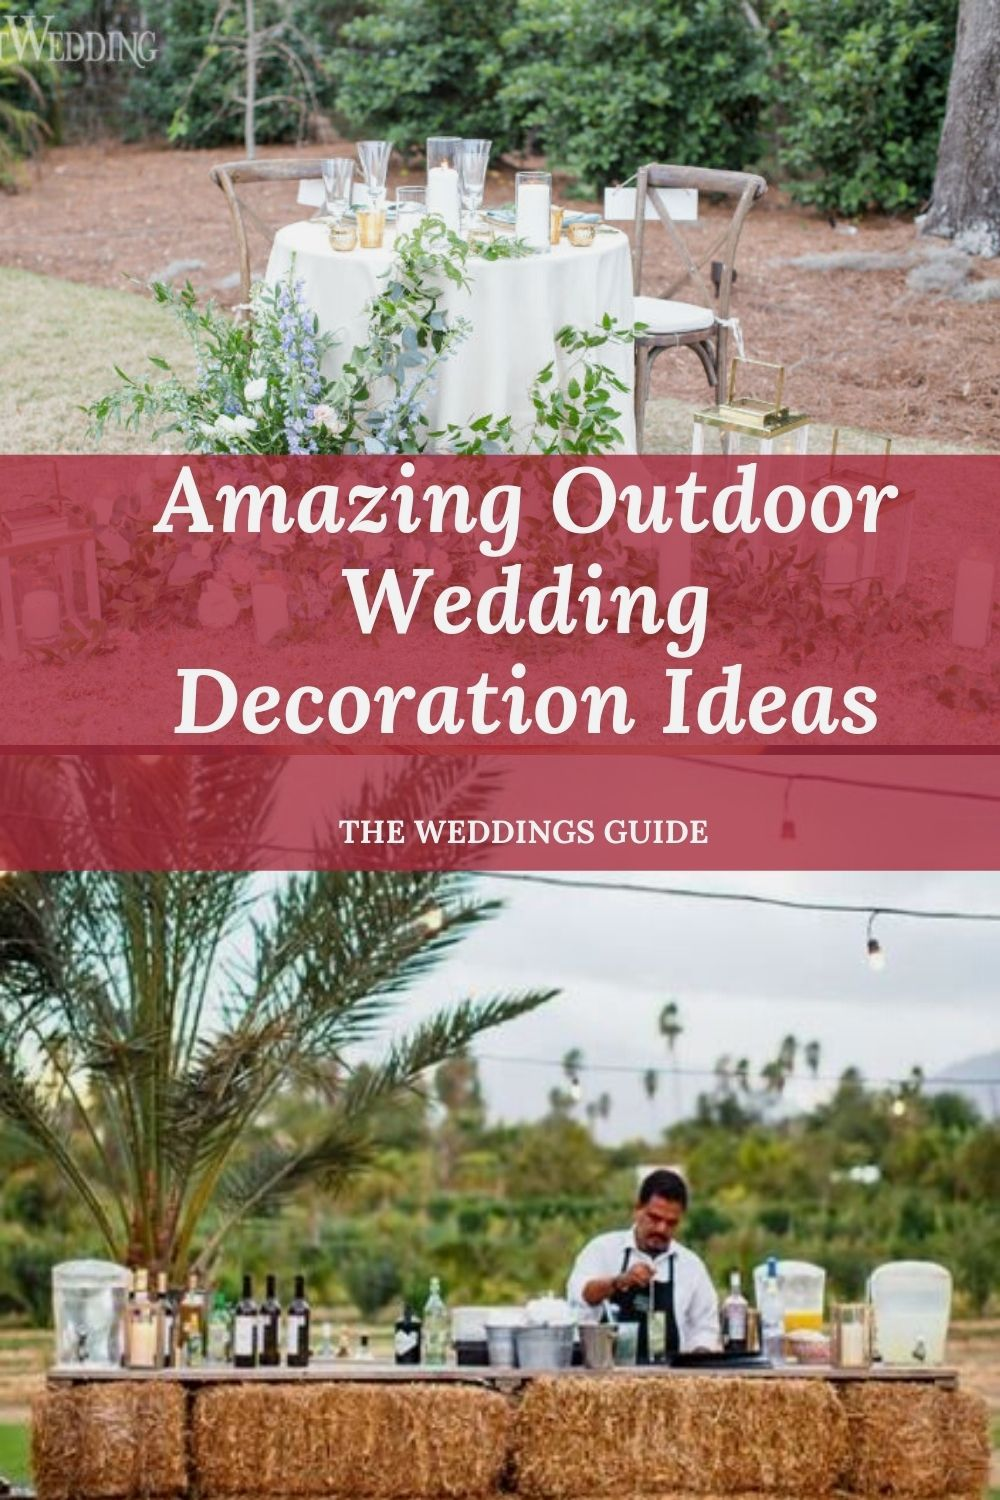 Amazing Outdoor Wedding Decoration